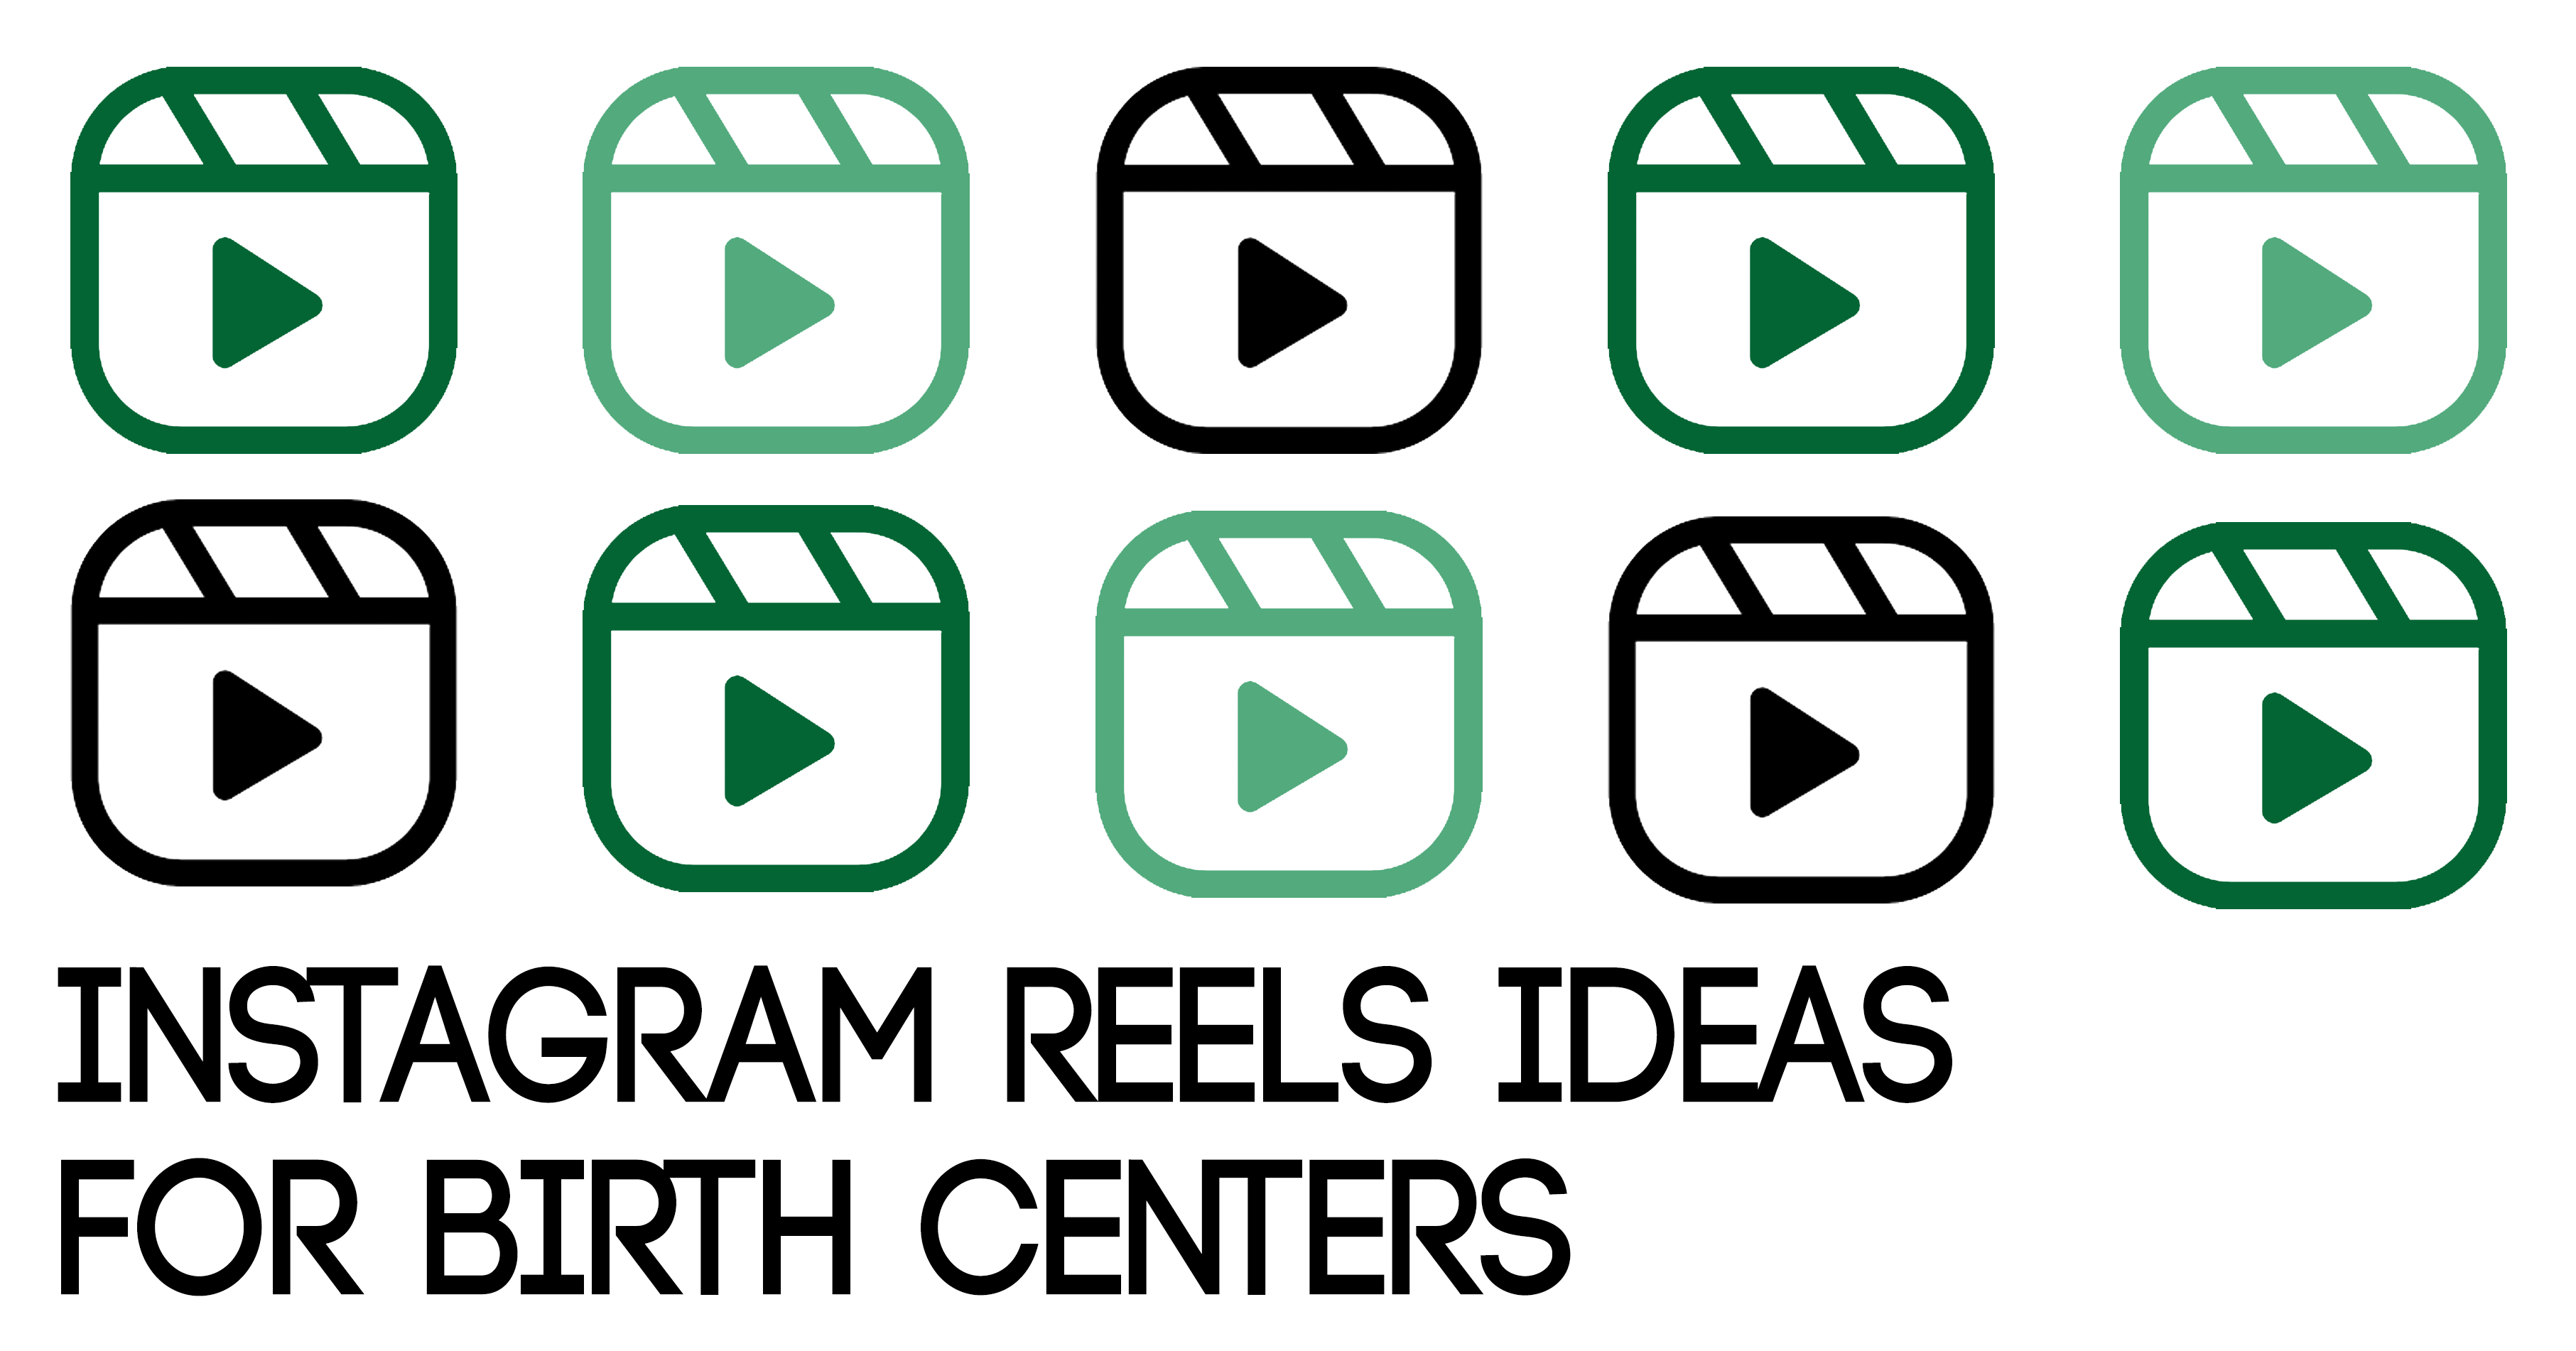 Instagram Reels Ideas for Birth Centers